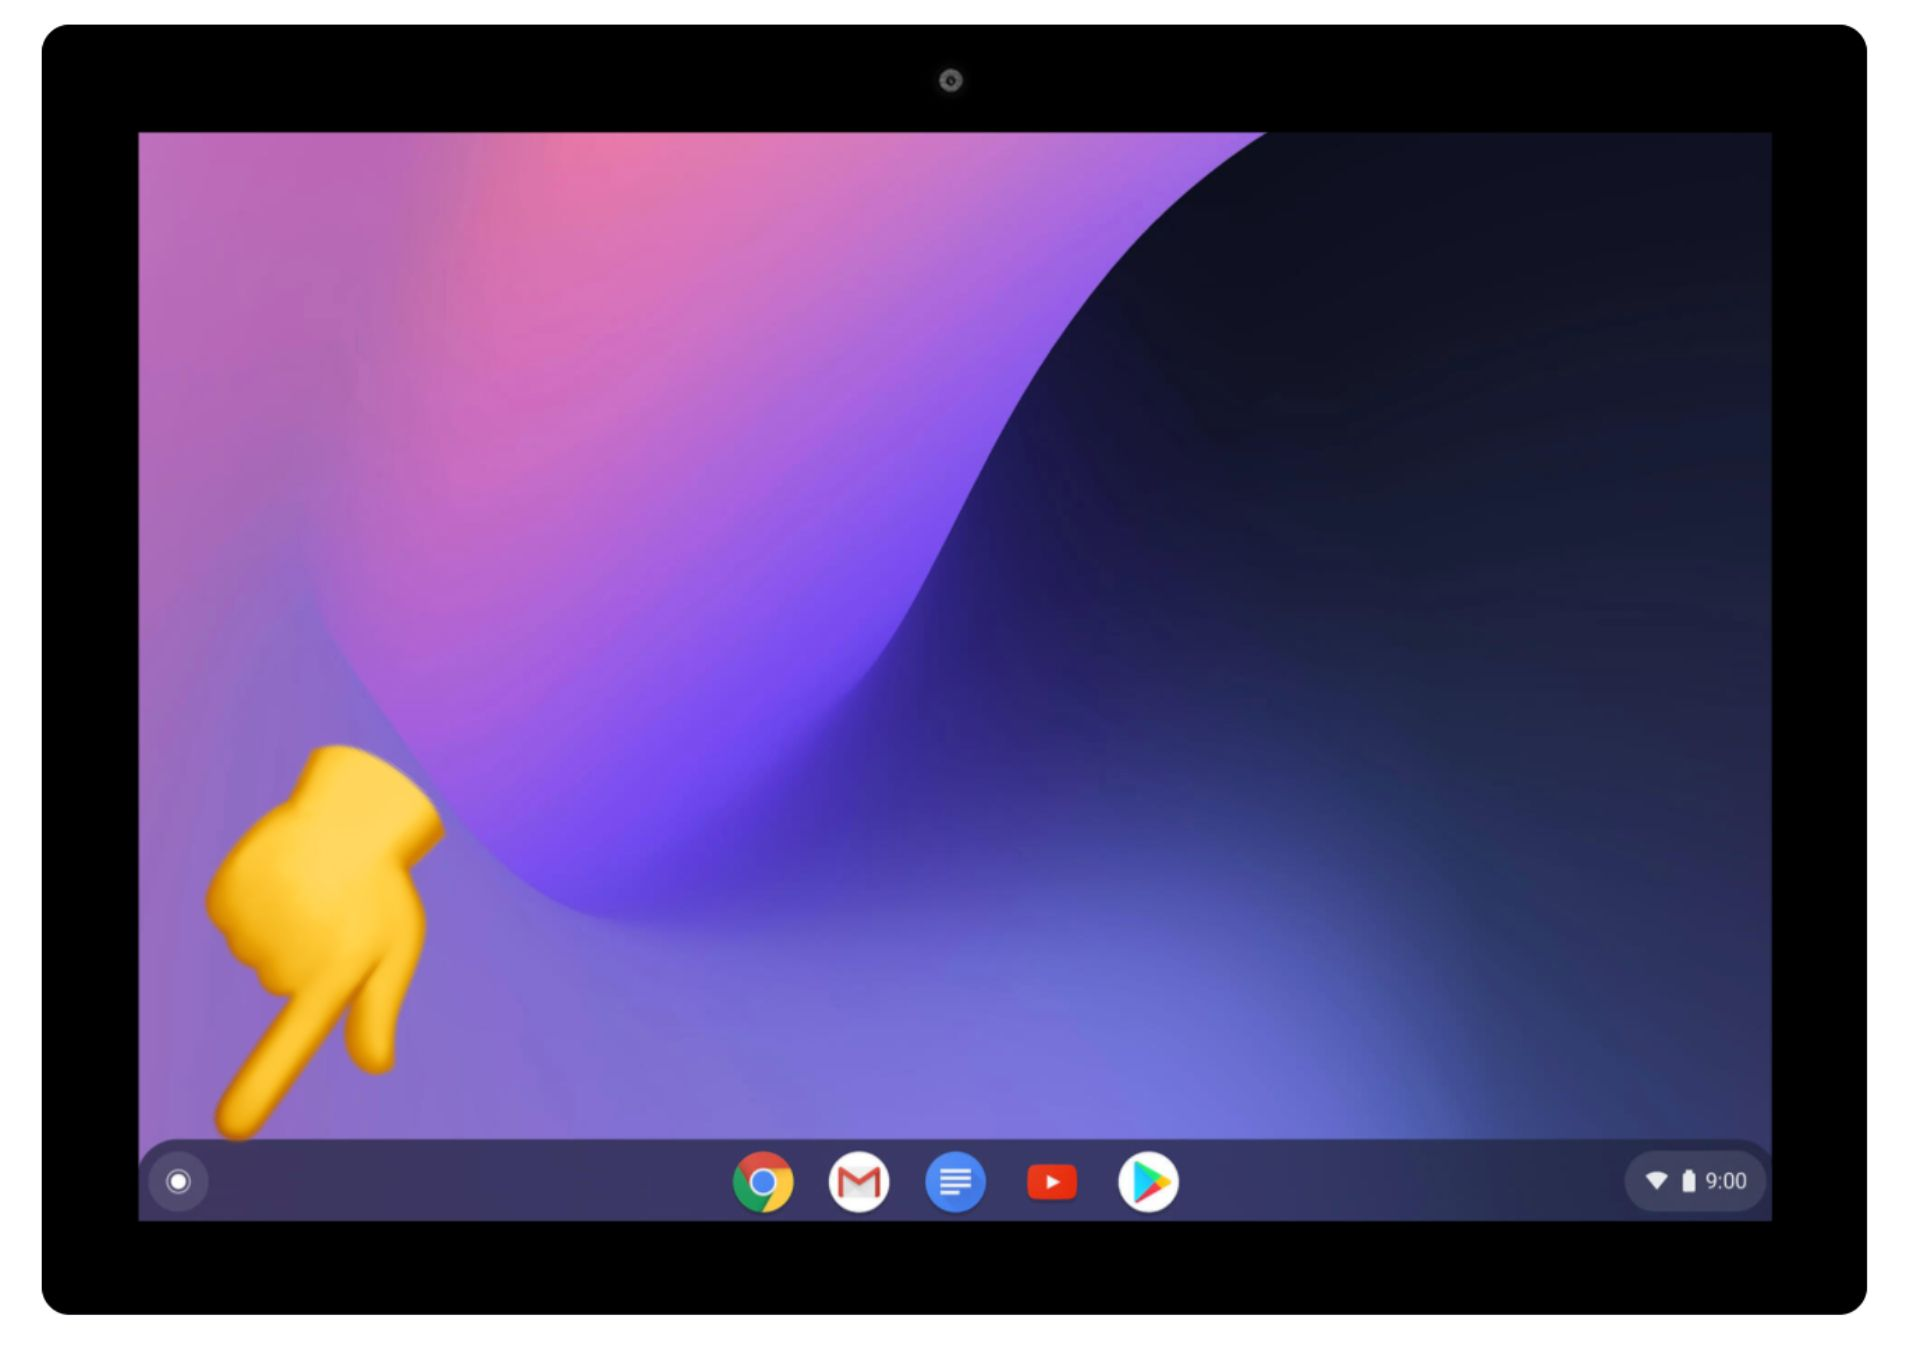 screenshot of a Chromebook screen with a finger pointing to the launcher icon